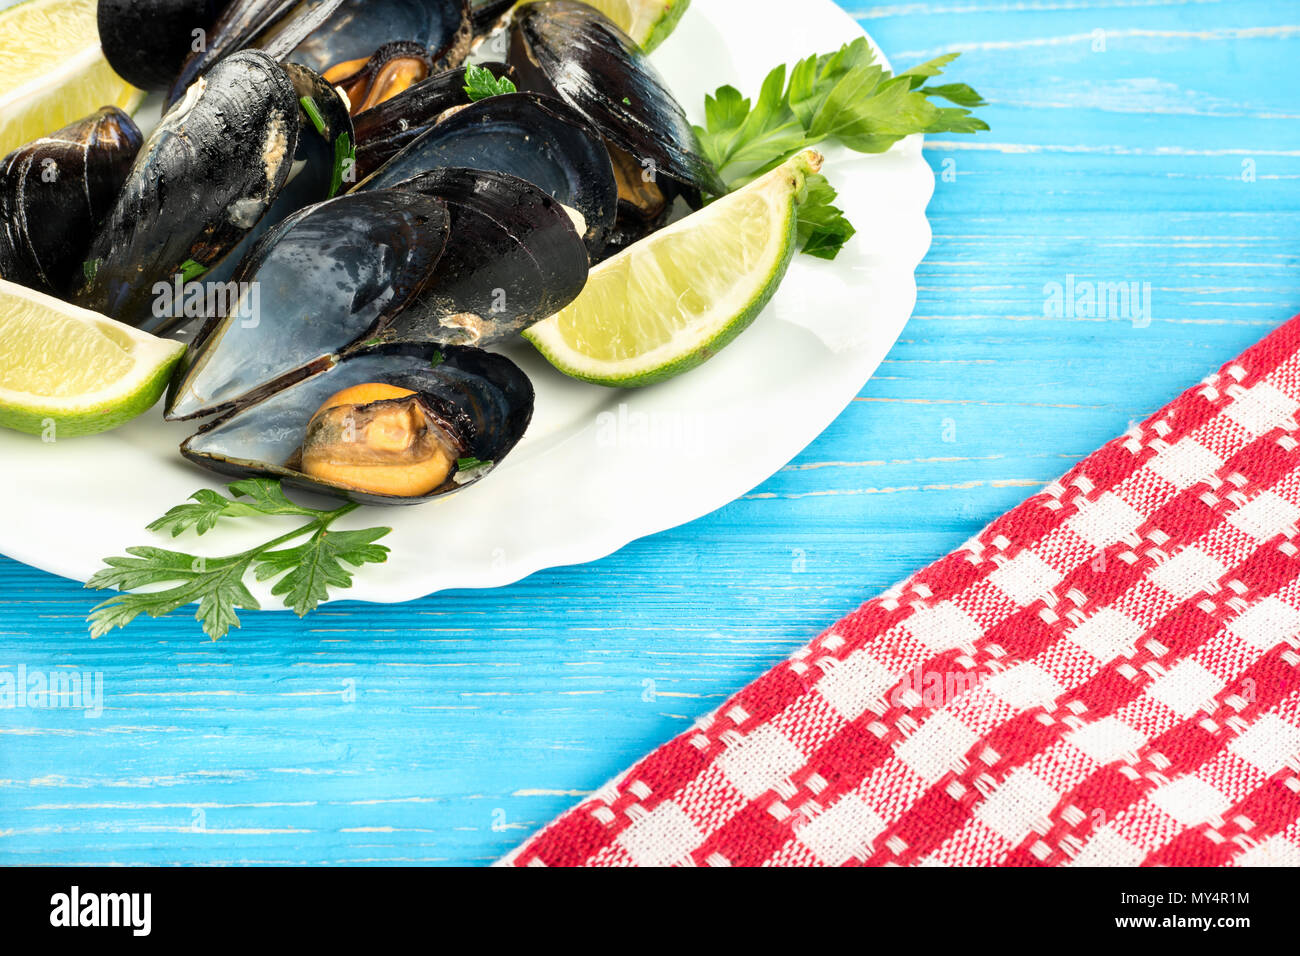 Delicious cooked mussels in a plate on a blue table - Stock Image